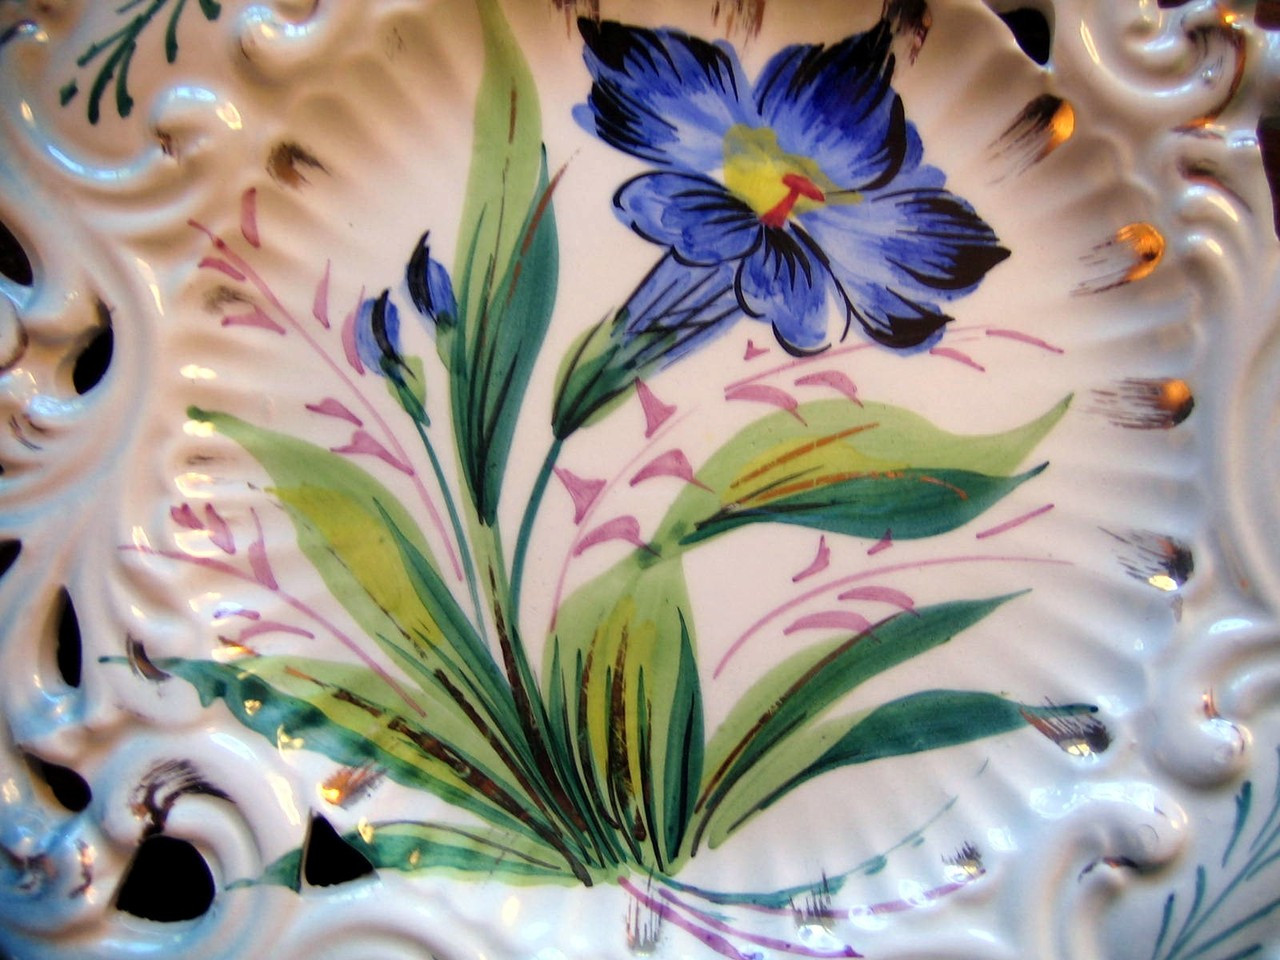 Vintage Decorative Plate - Aqua Pierced Blue Flower Gold Leaf Handpainted in Italy Center www.DecorativeDishes.net